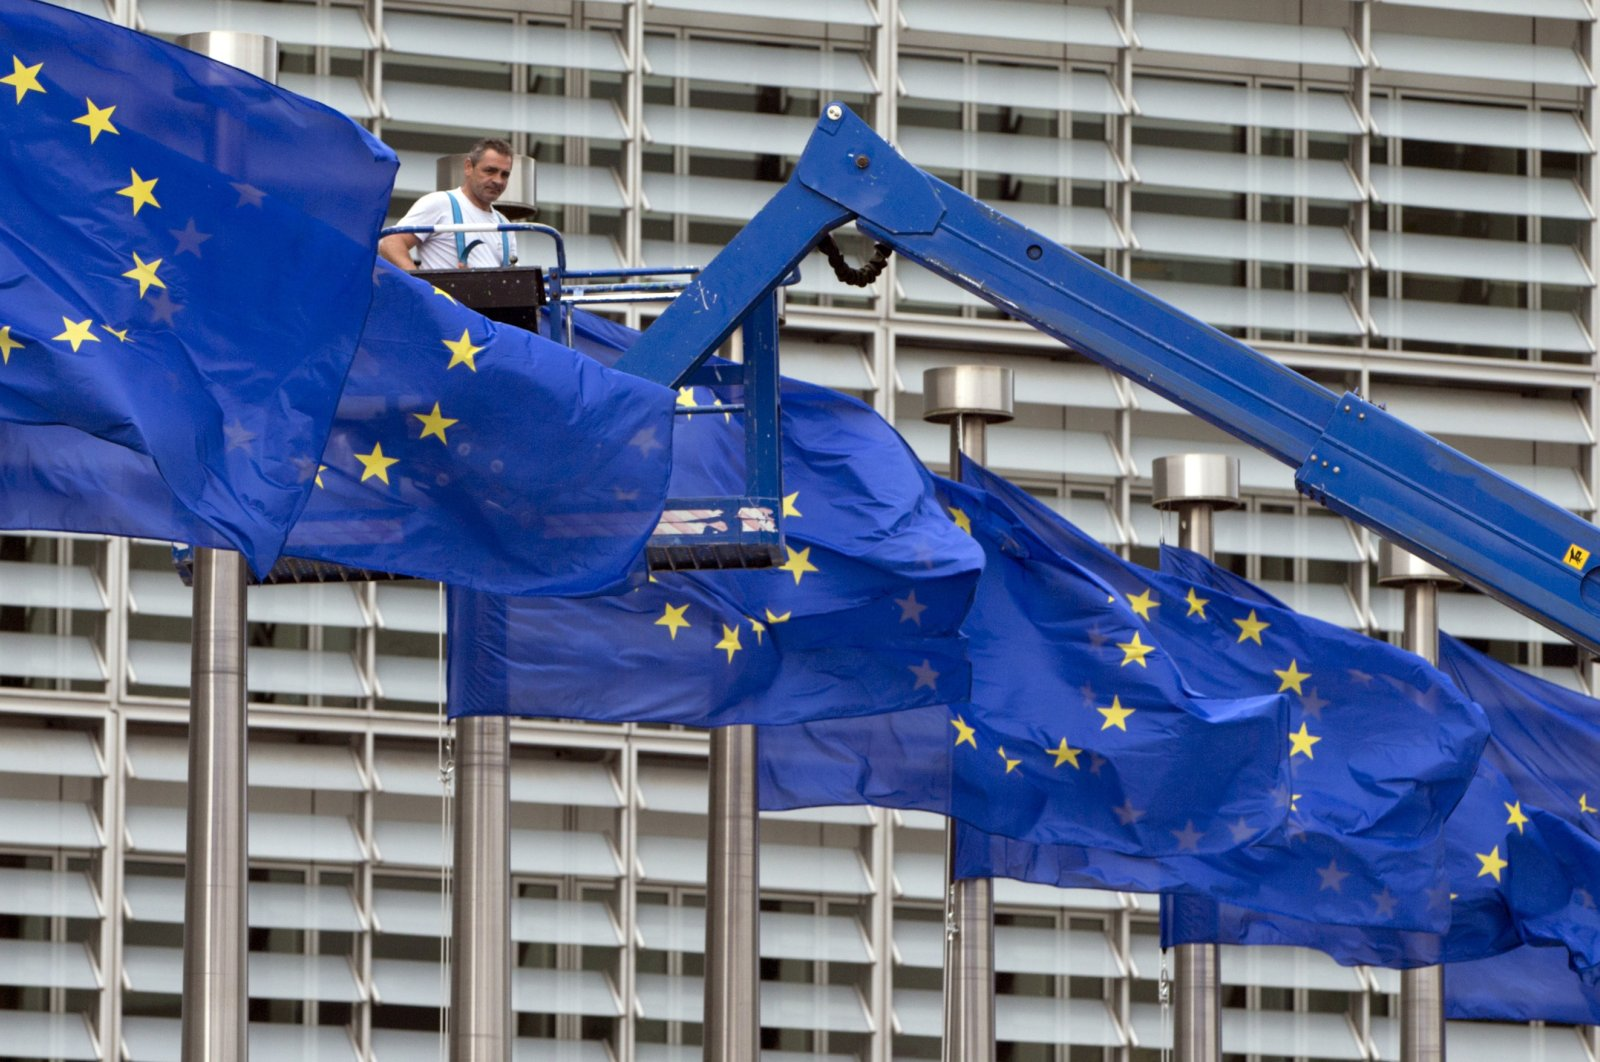 A worker on a lift adjusts the EU flags in front of EU headquarters in Brussels, Belgium, June 22, 2016. (AP File Photo)